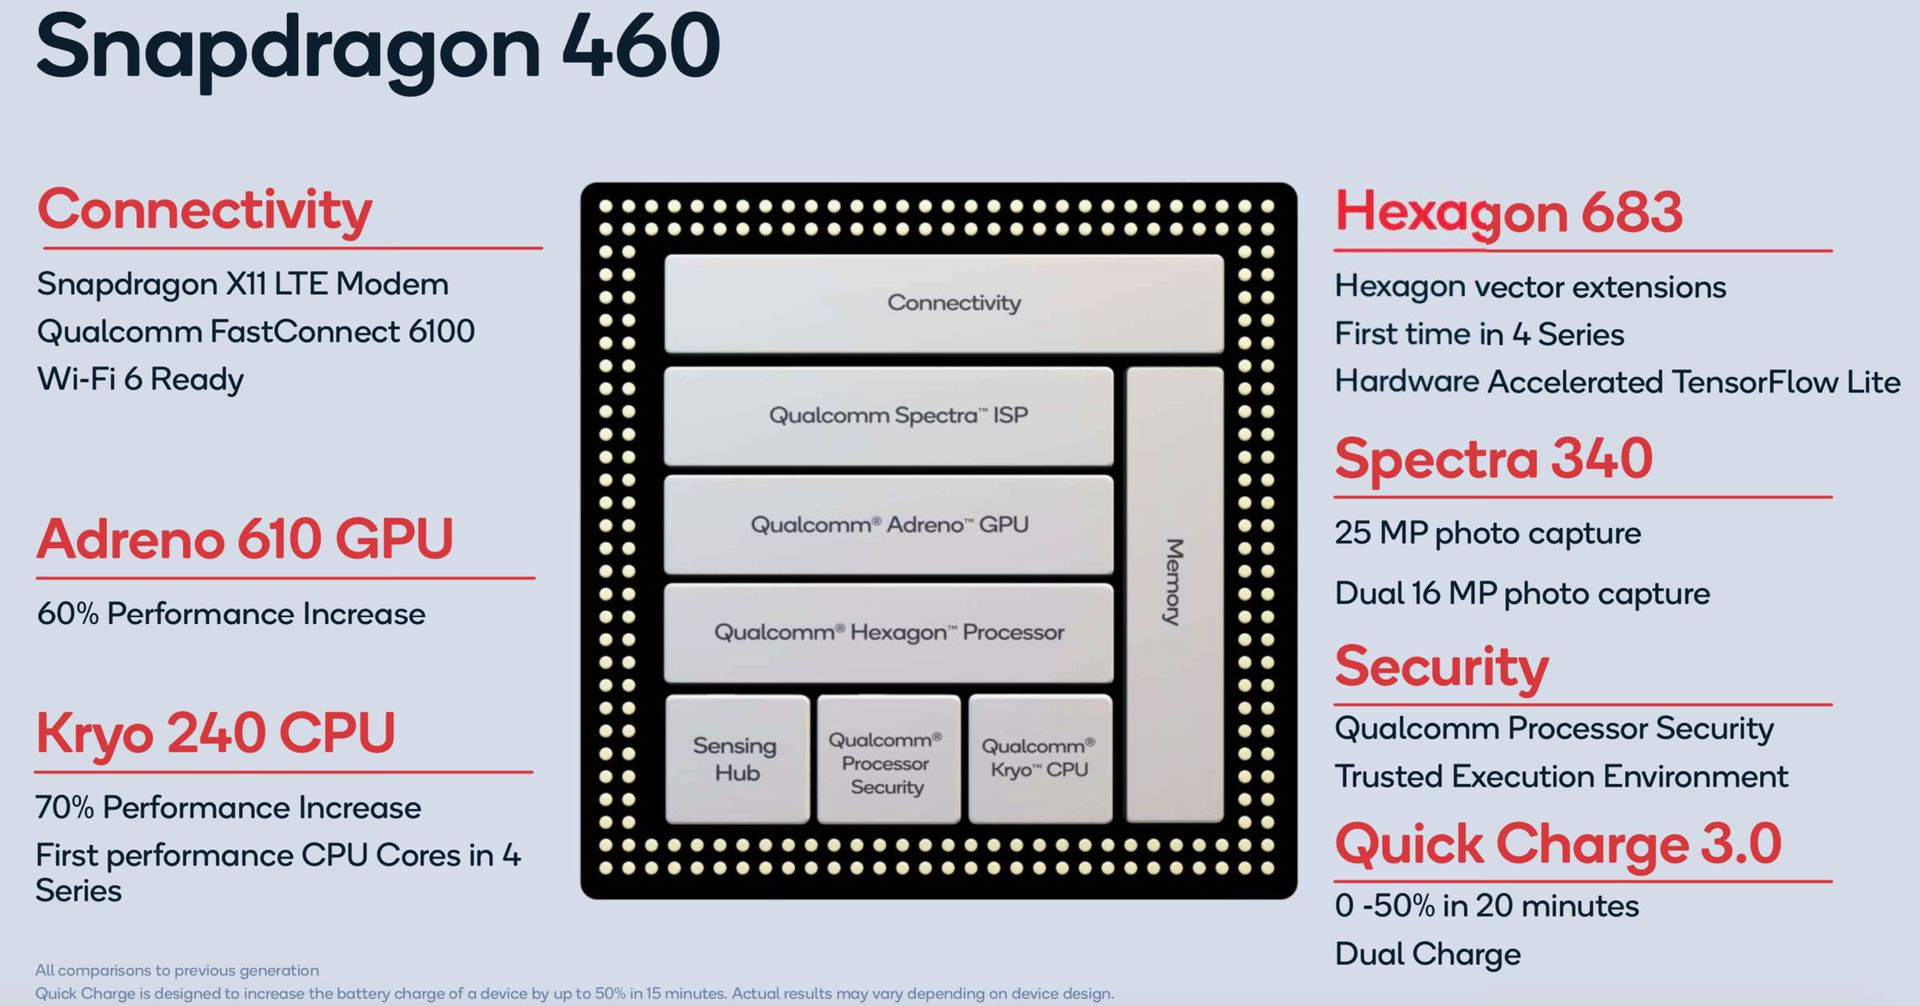 Snapdragon 460 Processor Features